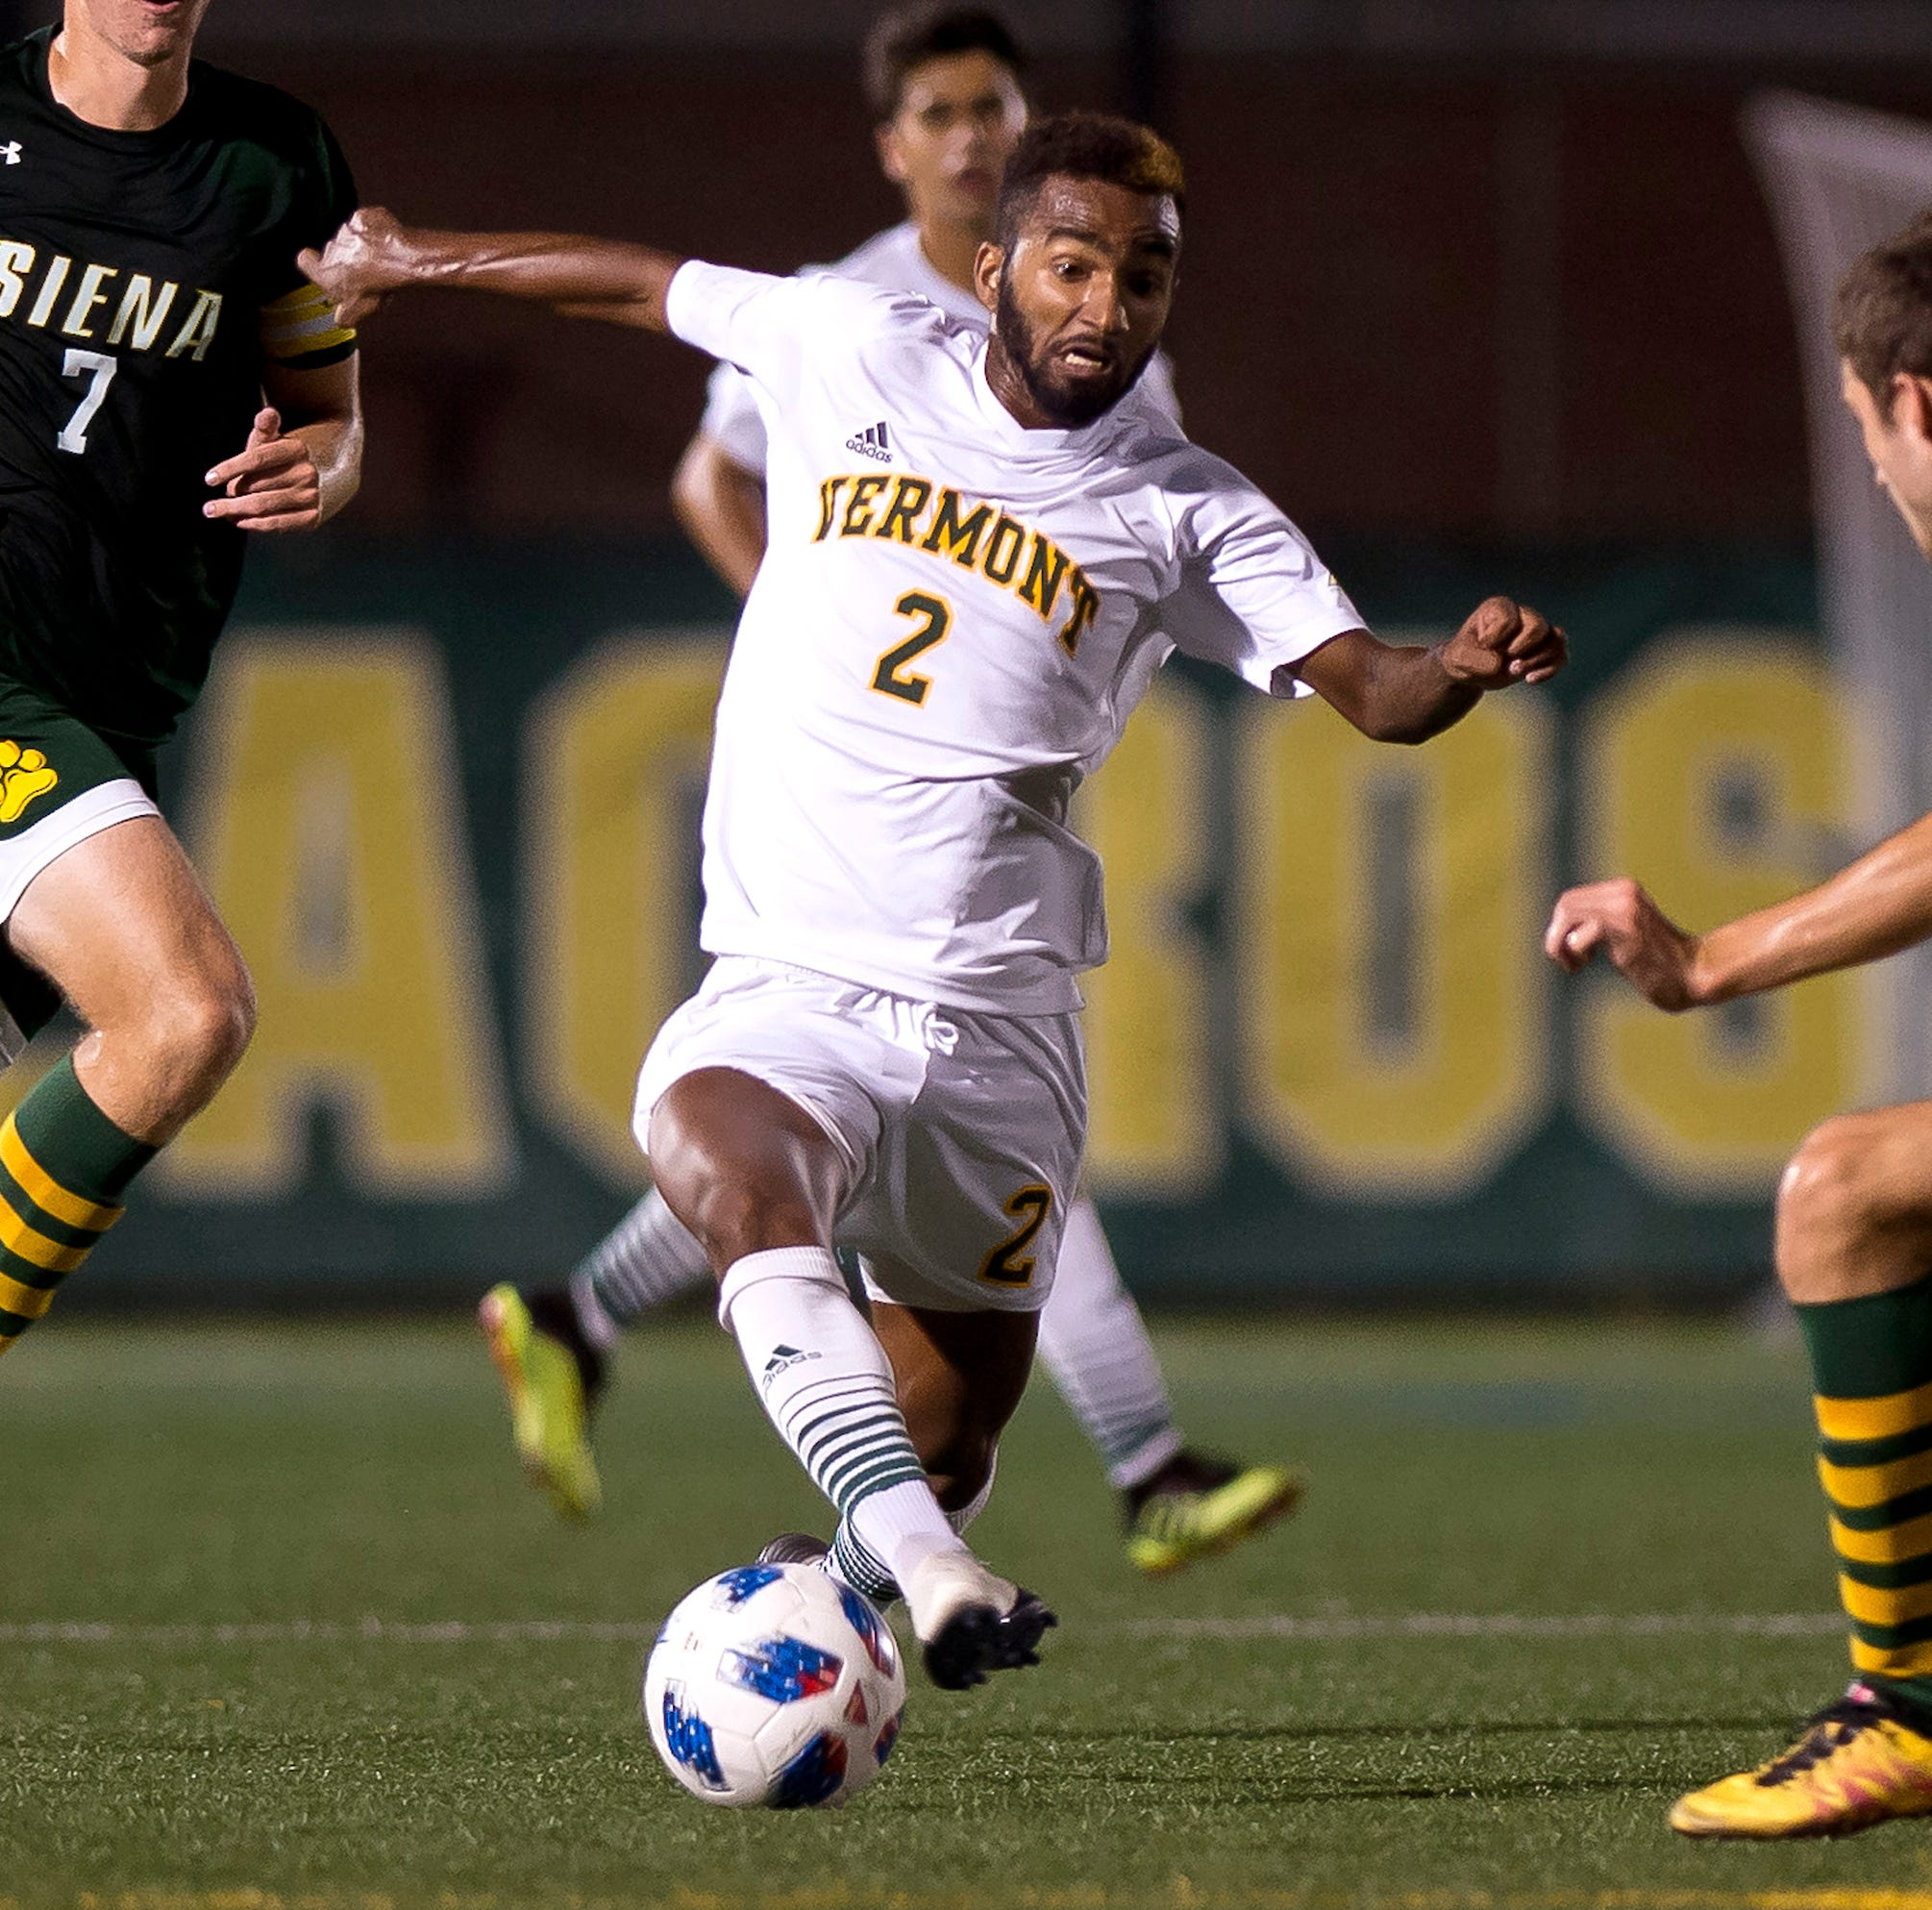 D.C. United pick UVM's Geo Alves in MLS SuperDraft